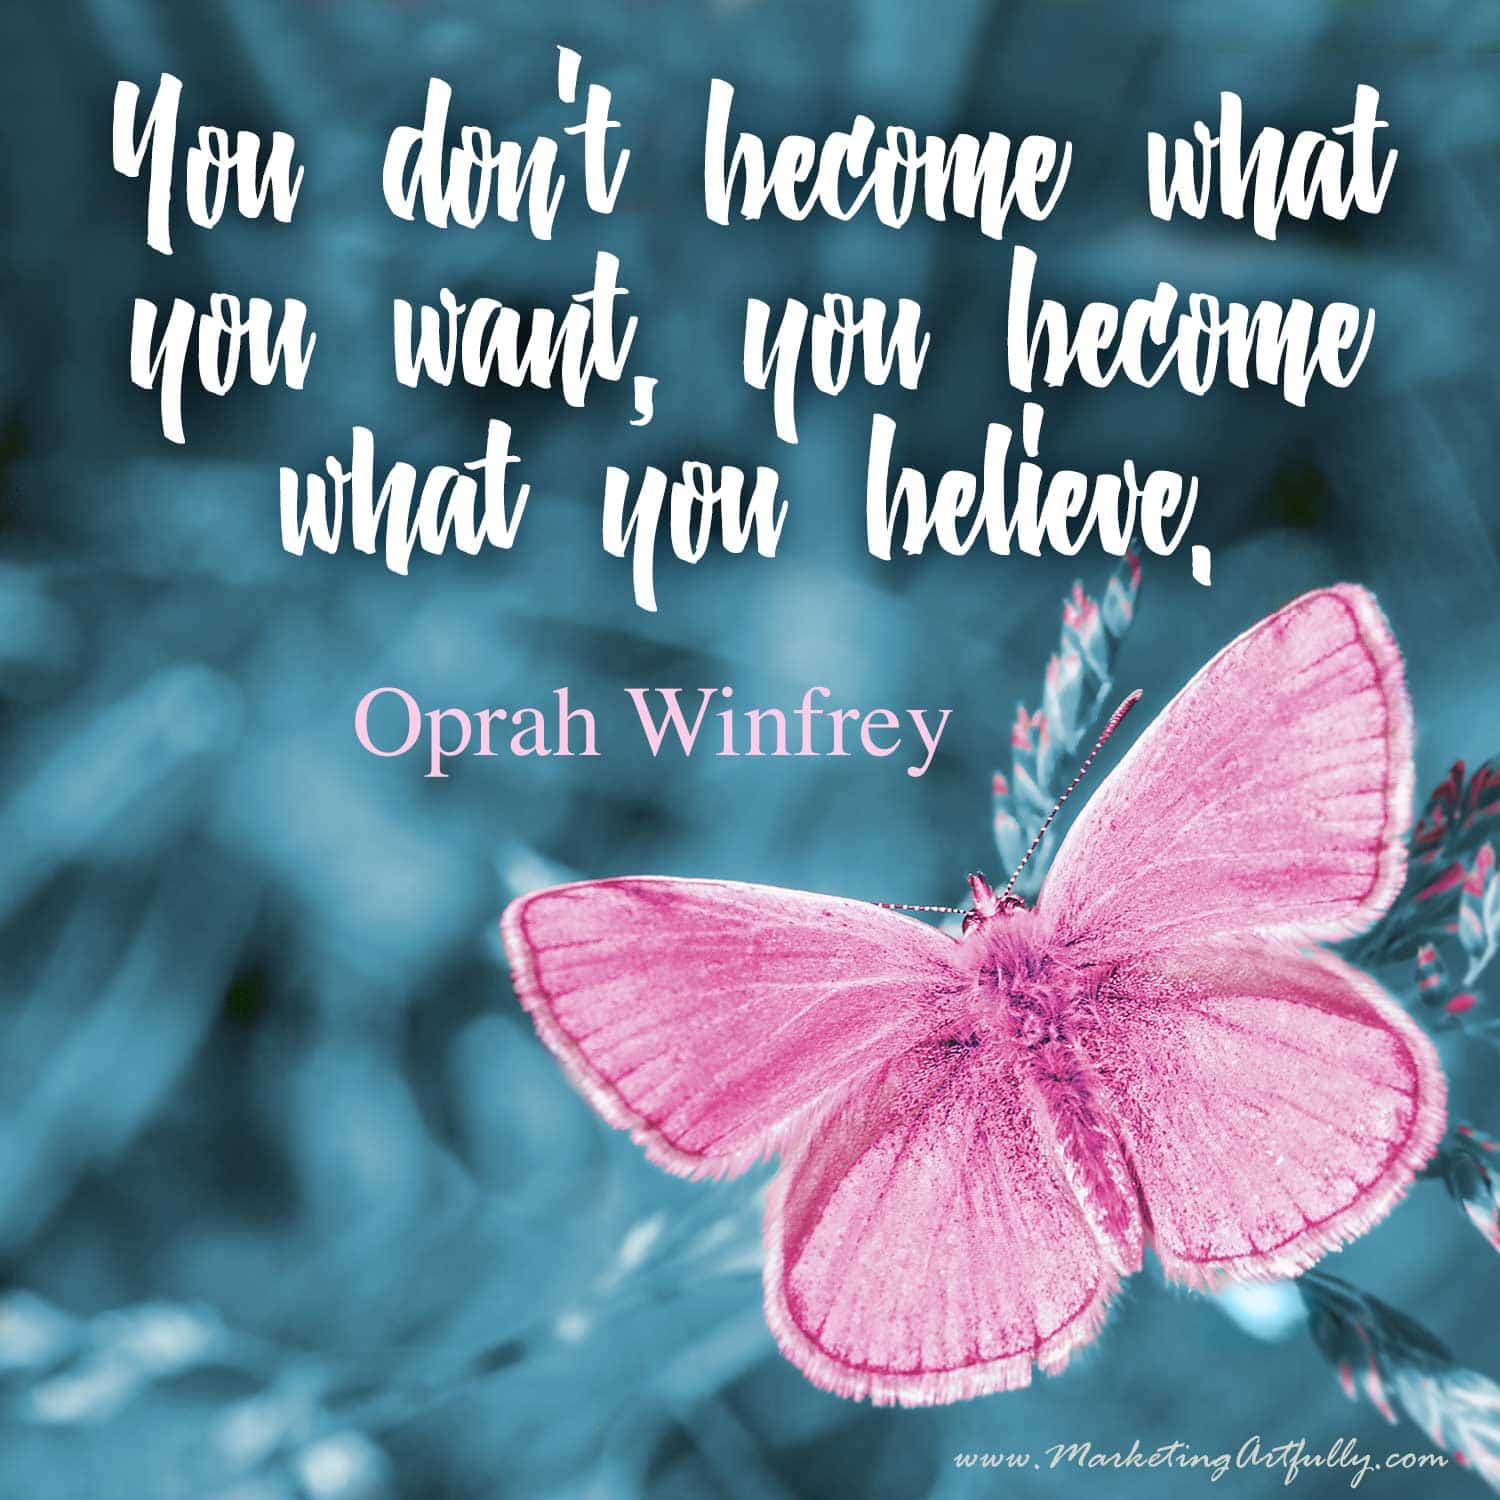 You don't become what you want, you become what you believe. Oprah Winfrey